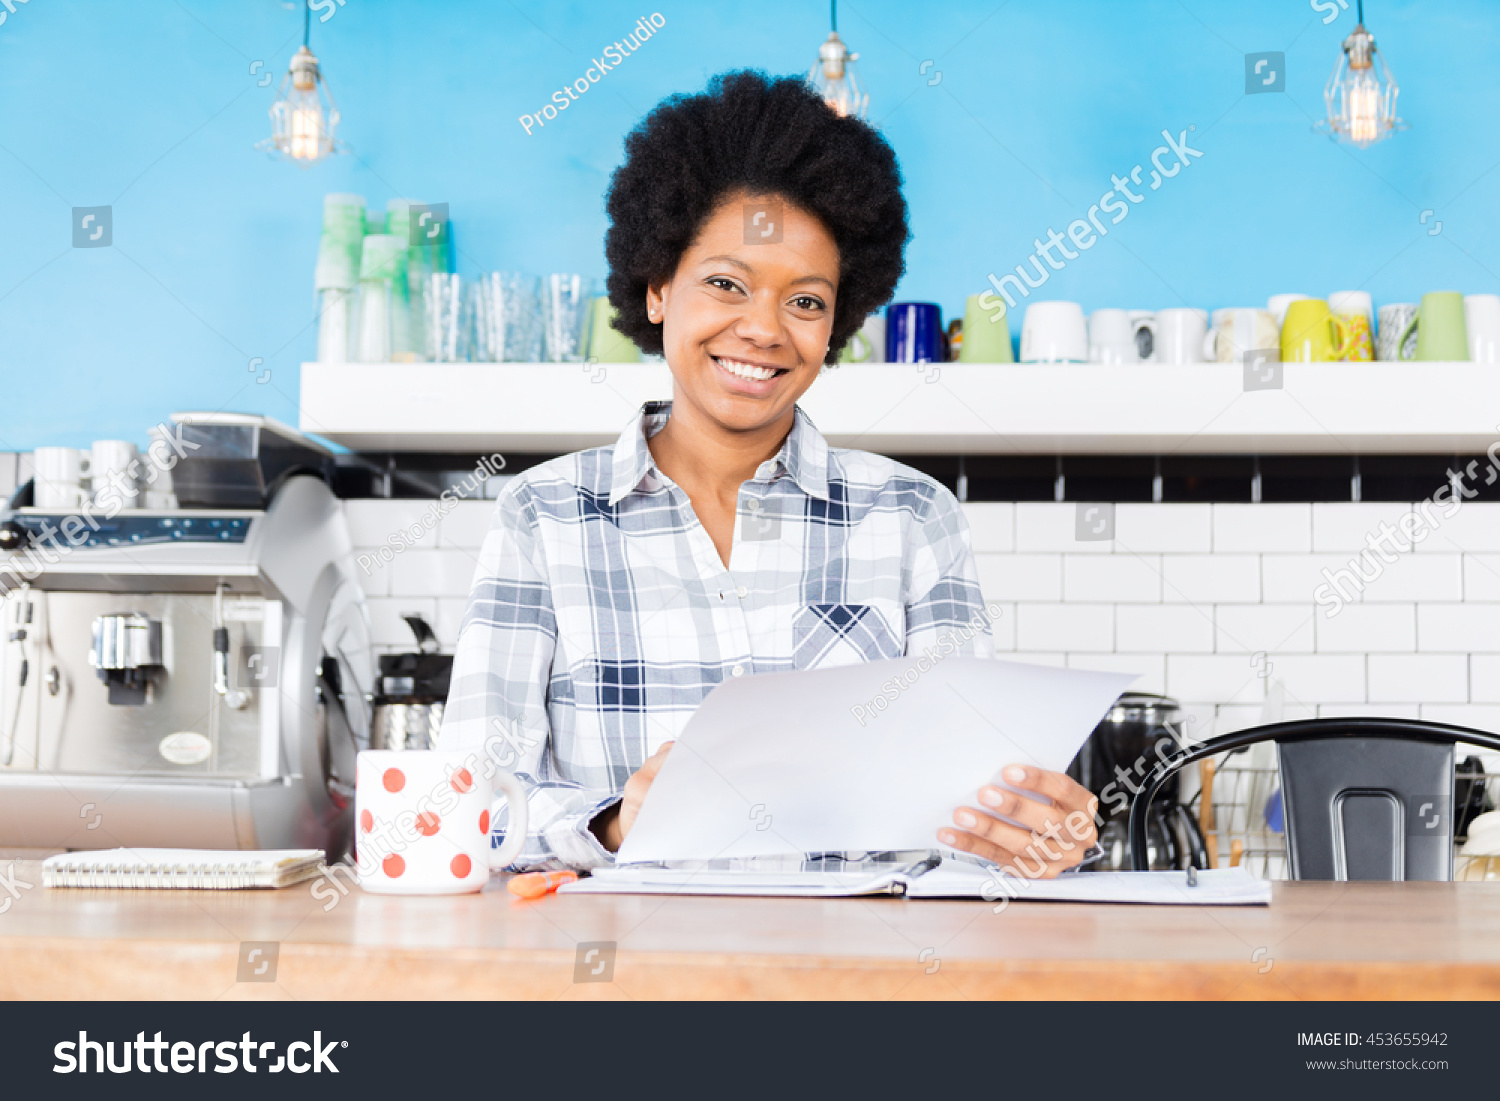 african american women essay Of african-american women ages 20 and older, 49 percent have heart diseases only 1 in 5 african-american women believes she is personally at risk only 52 percent of african-american women are aware of the signs and symptoms of a heart attack.